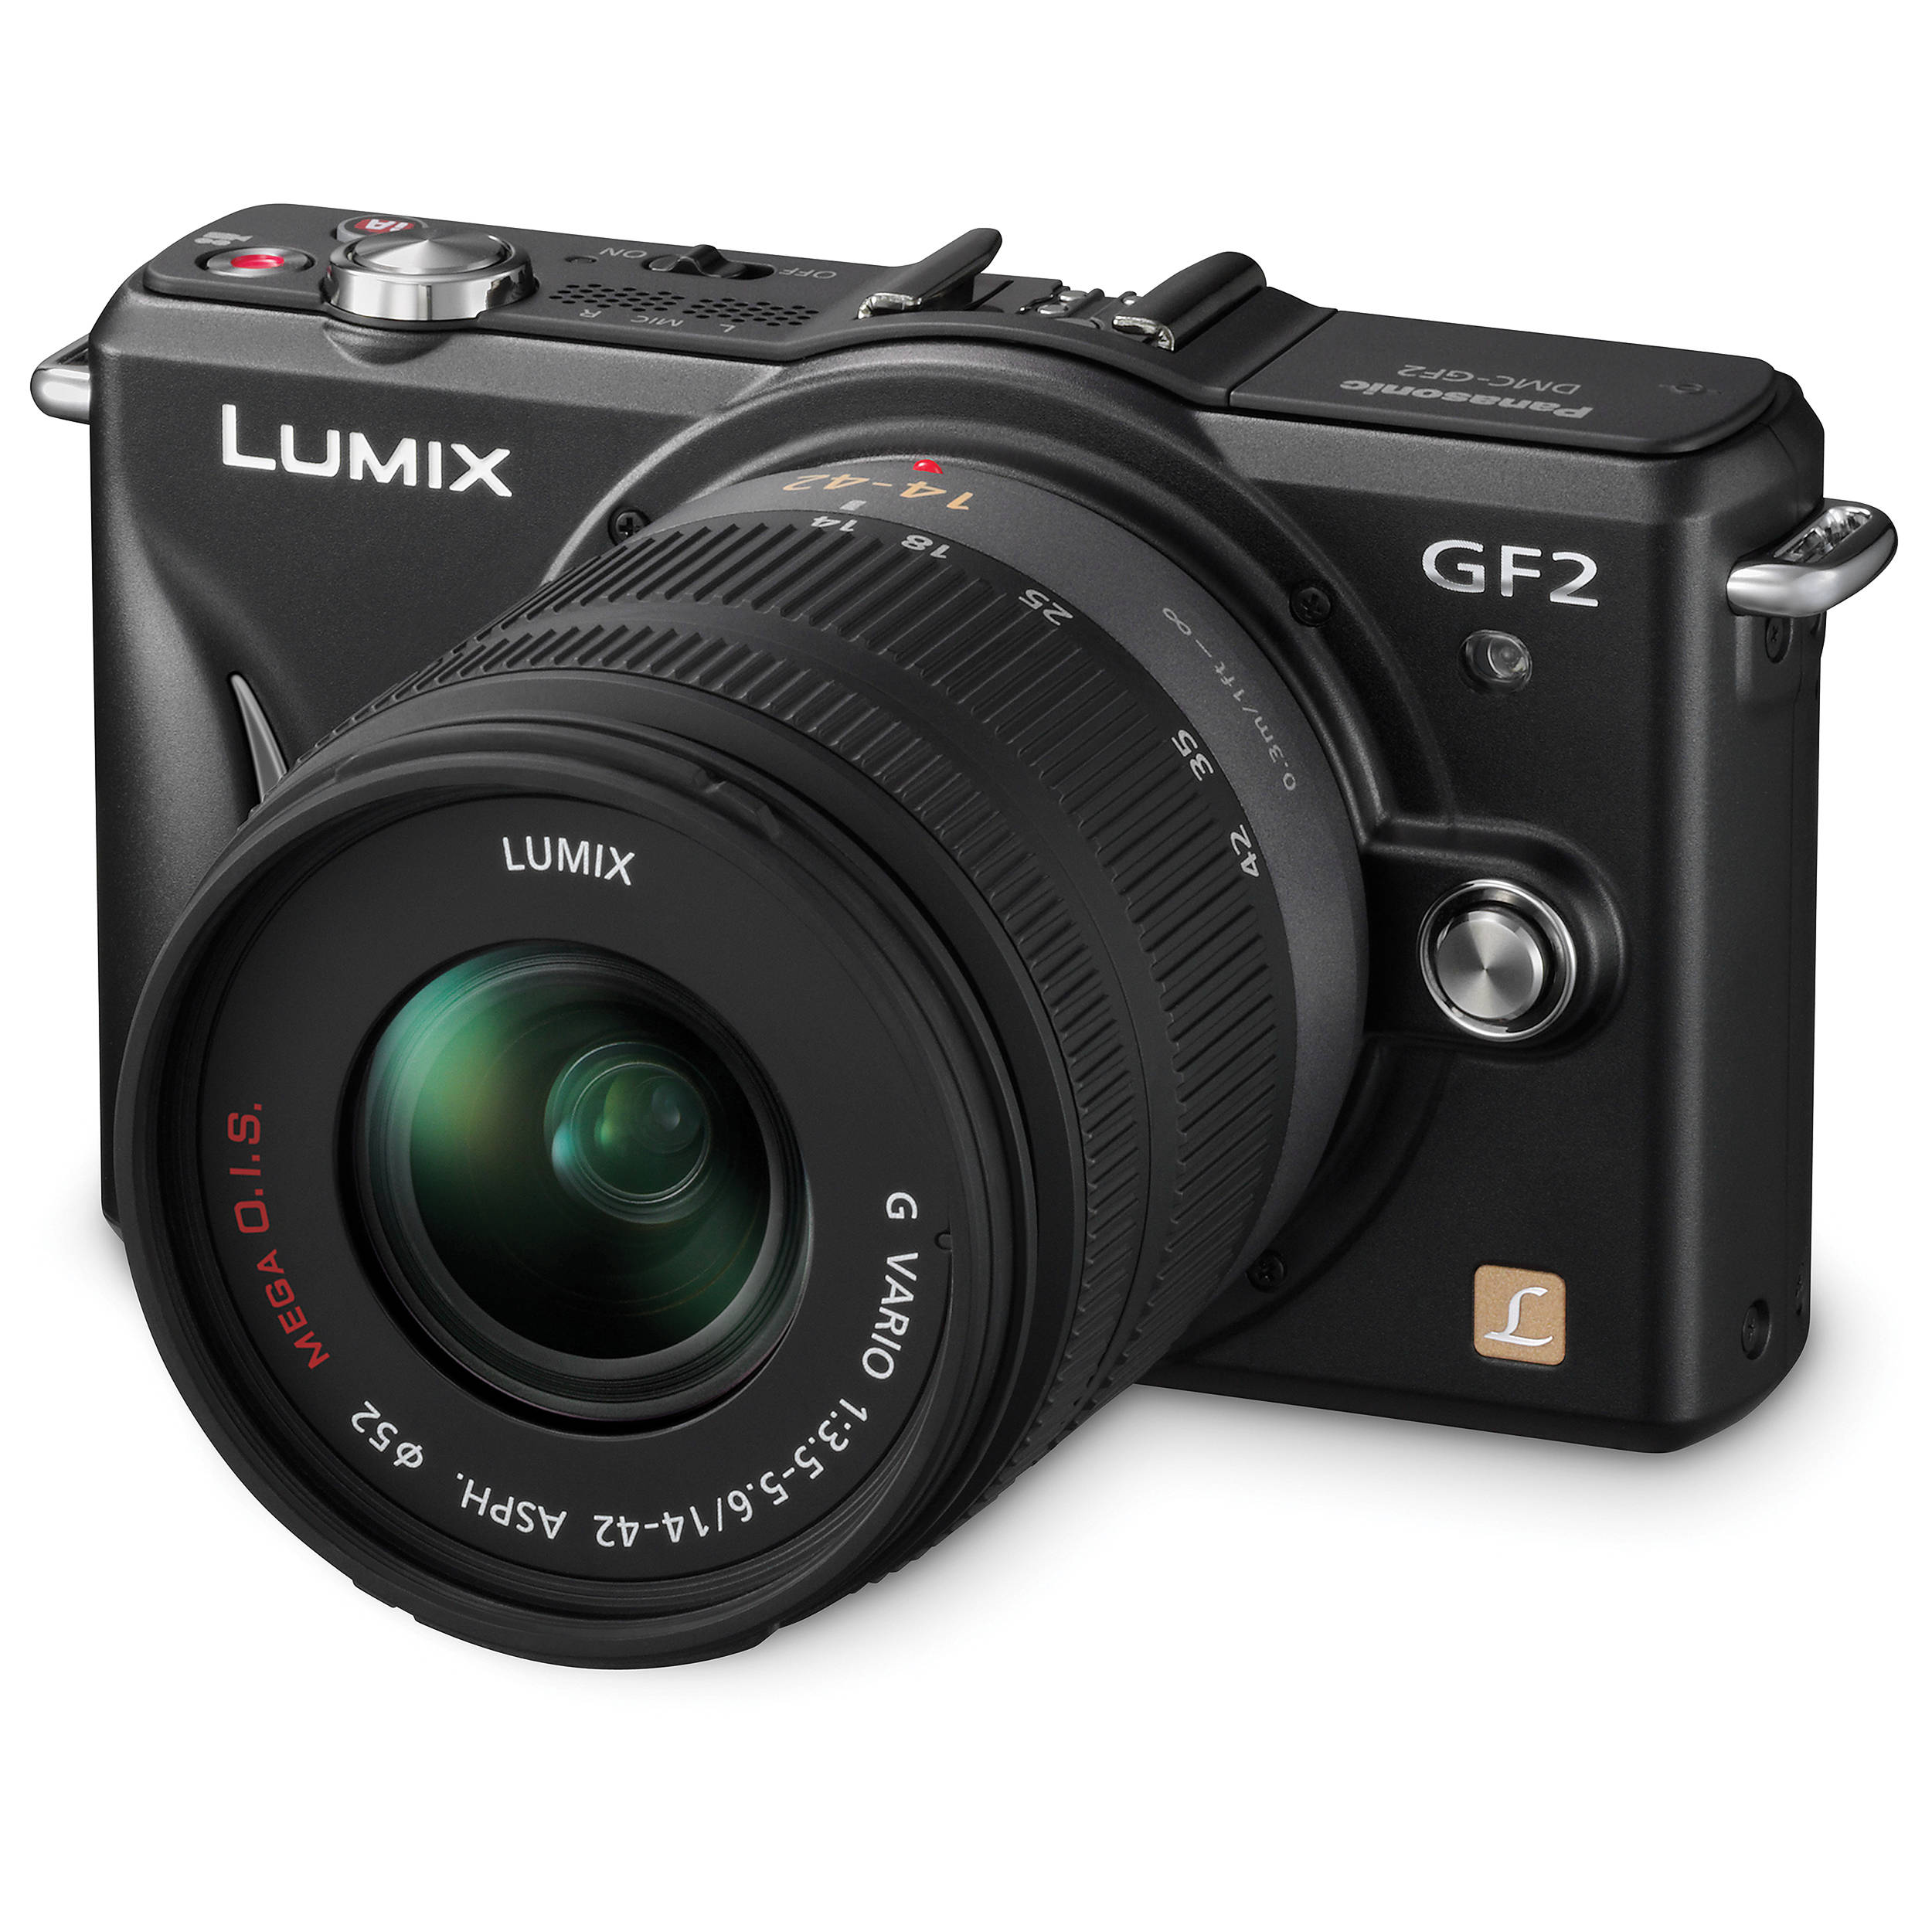 Image result for panasonic dmc-gf2